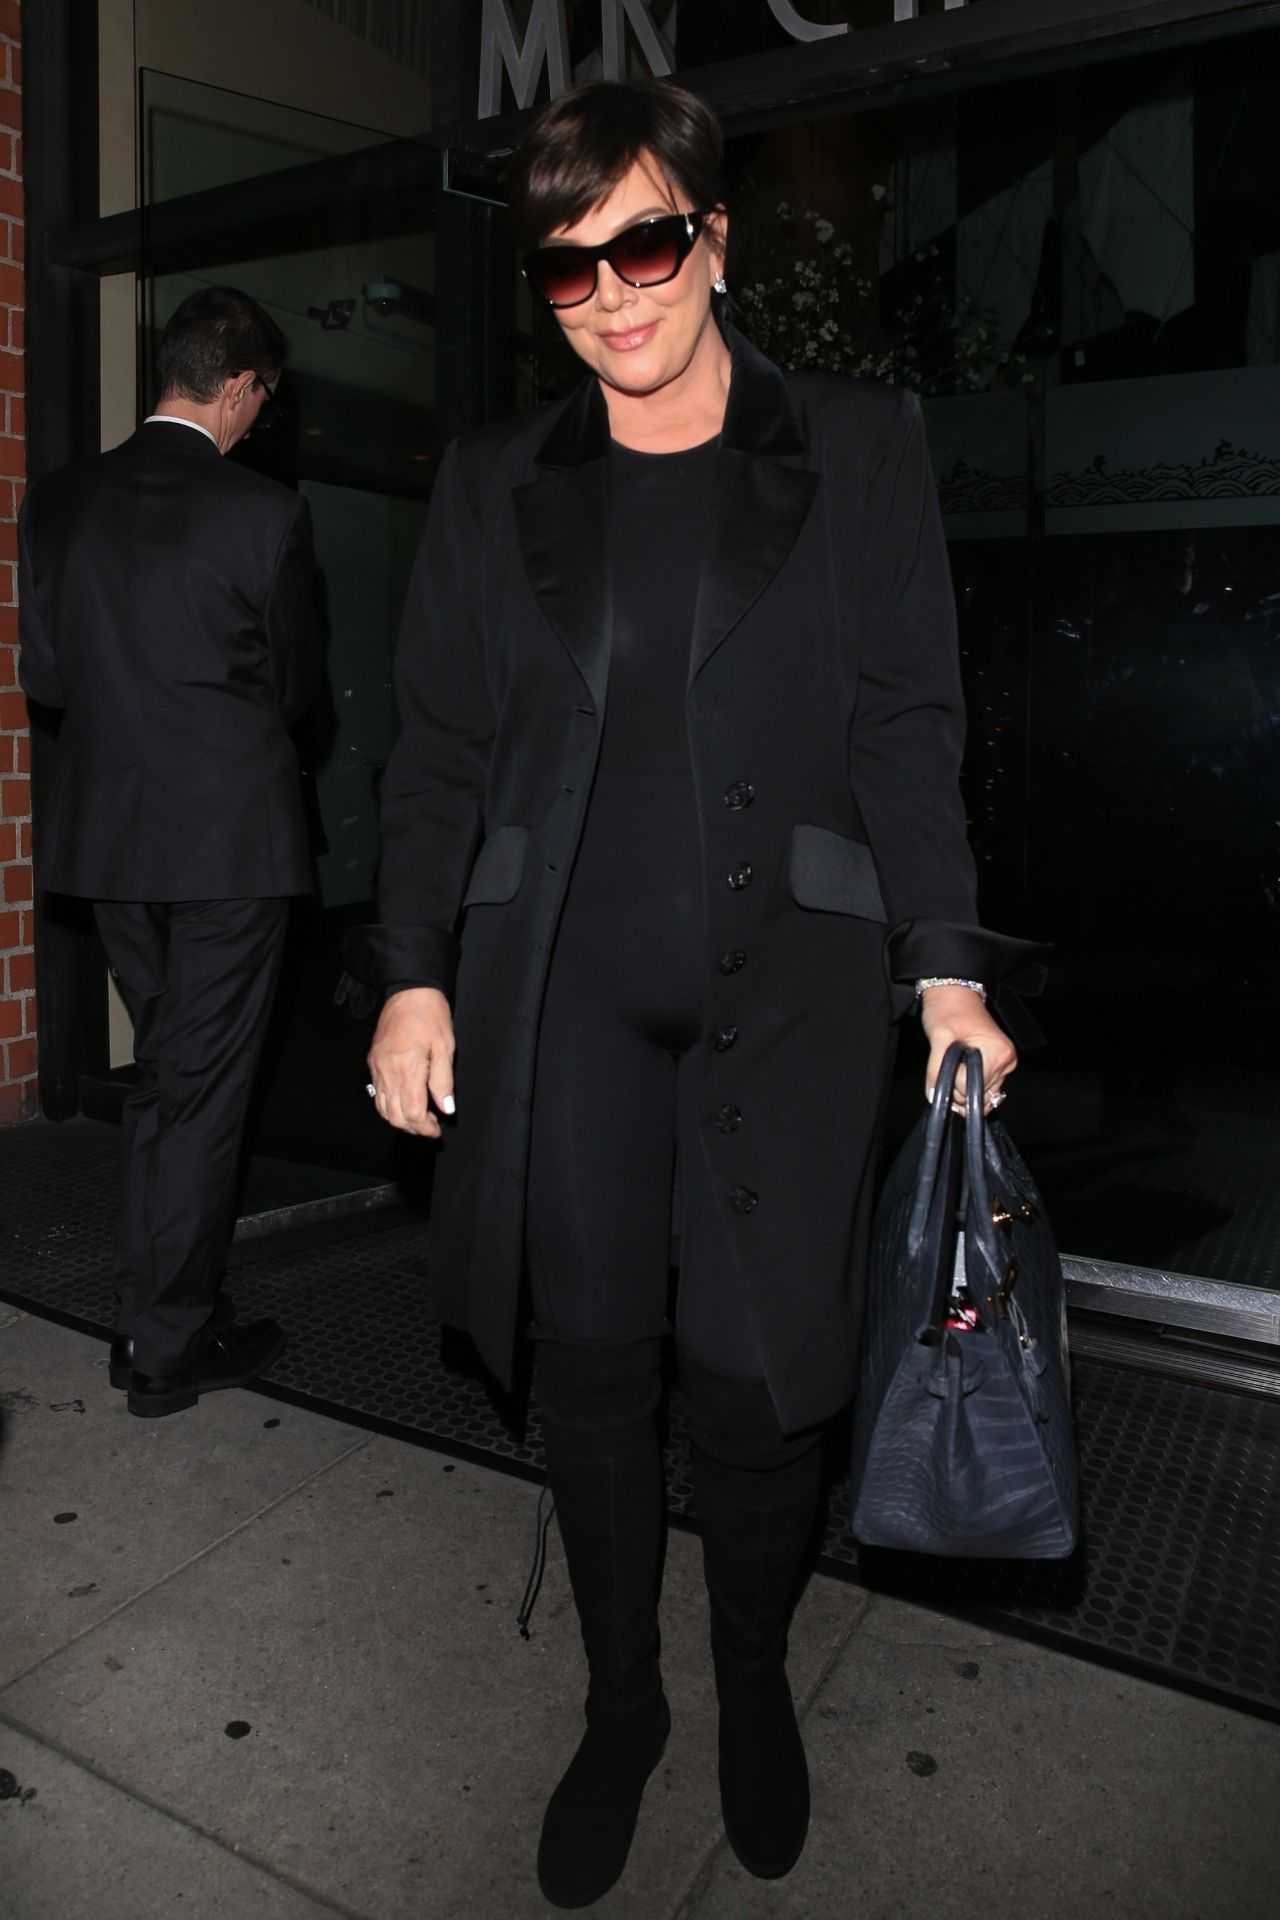 Kris Jenner Style Leaving Kathy Hilton S Birthday Party